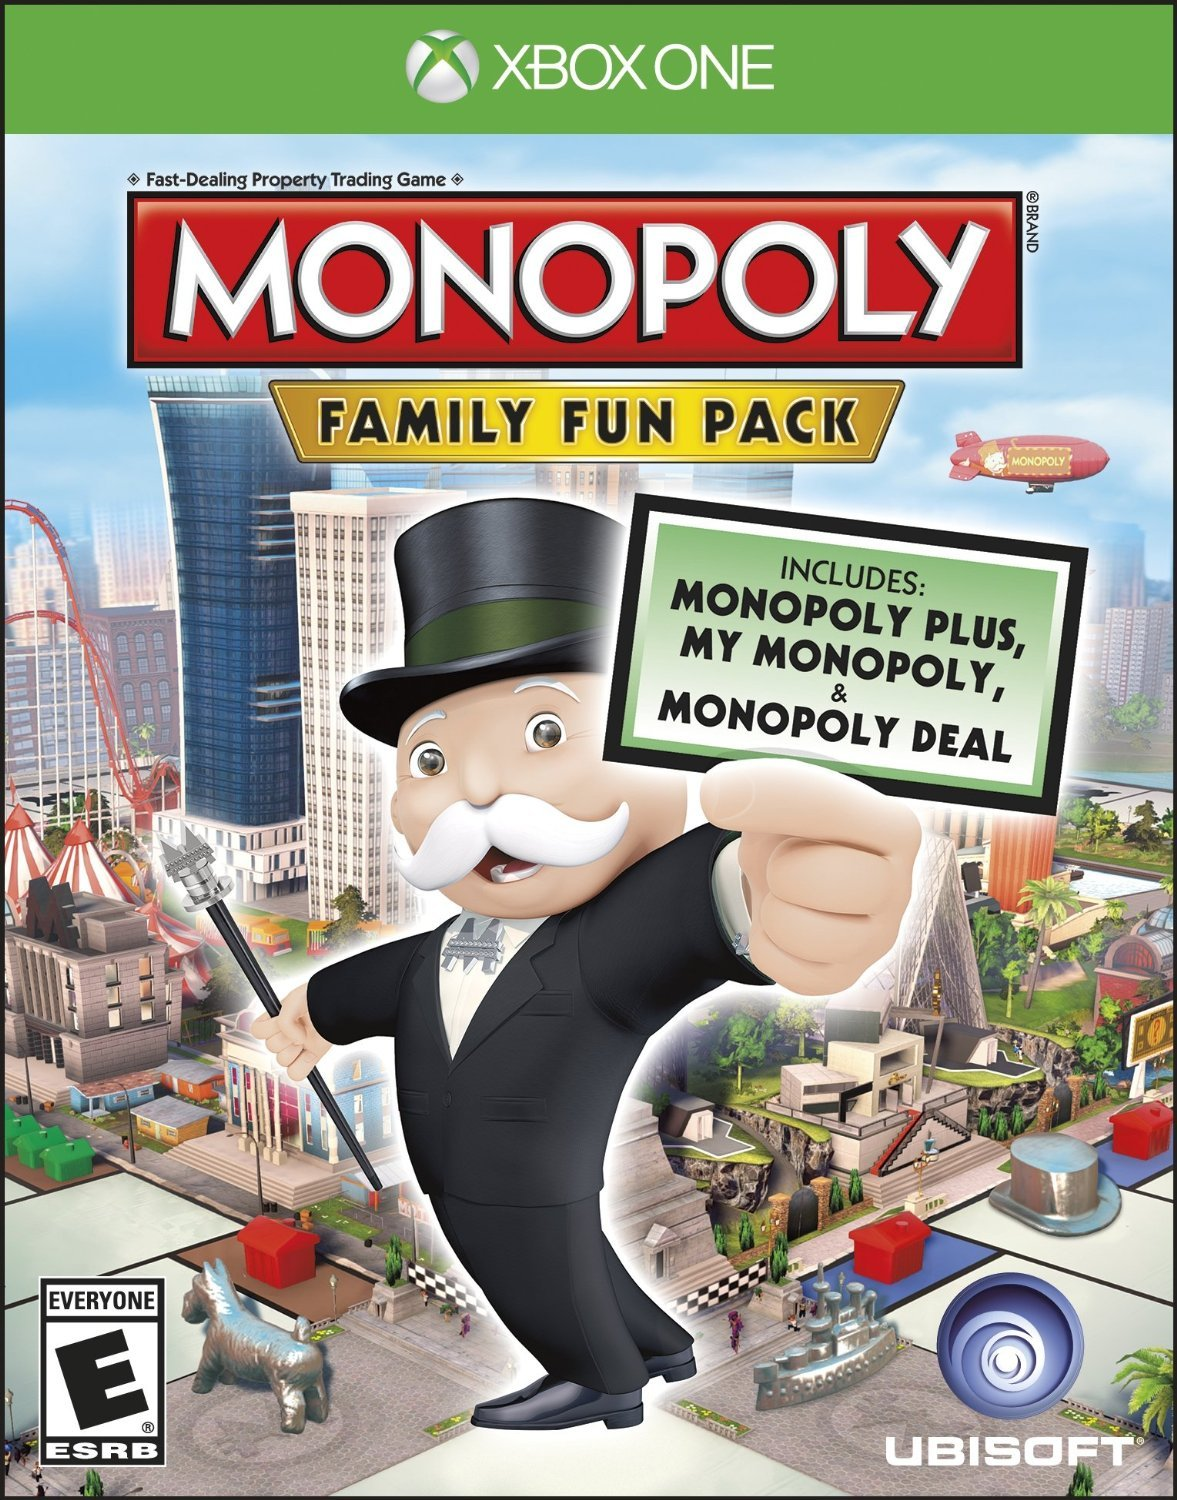 gifts for gamers under 20 bucks Monopoly For Xbox One